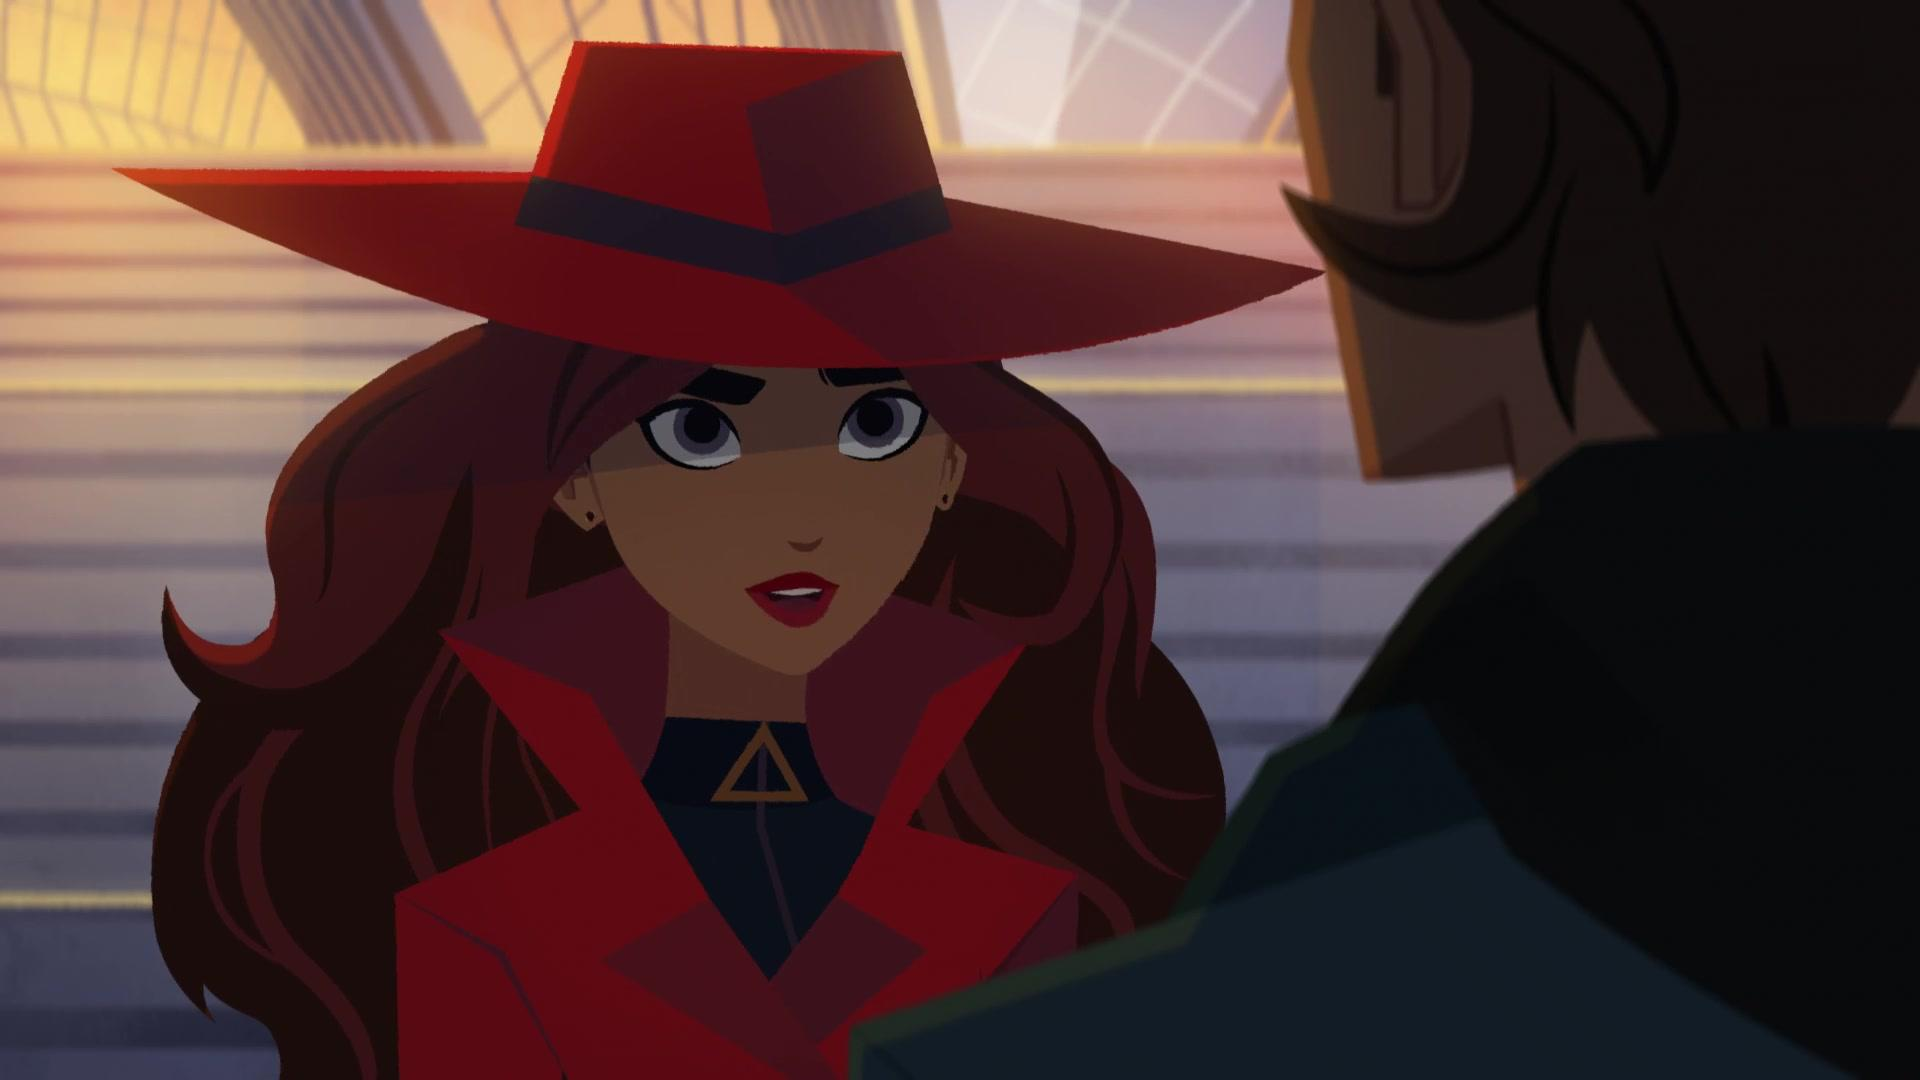 Screencaps and Image For Carmen Sandiego Season 1 10000+ Pictures